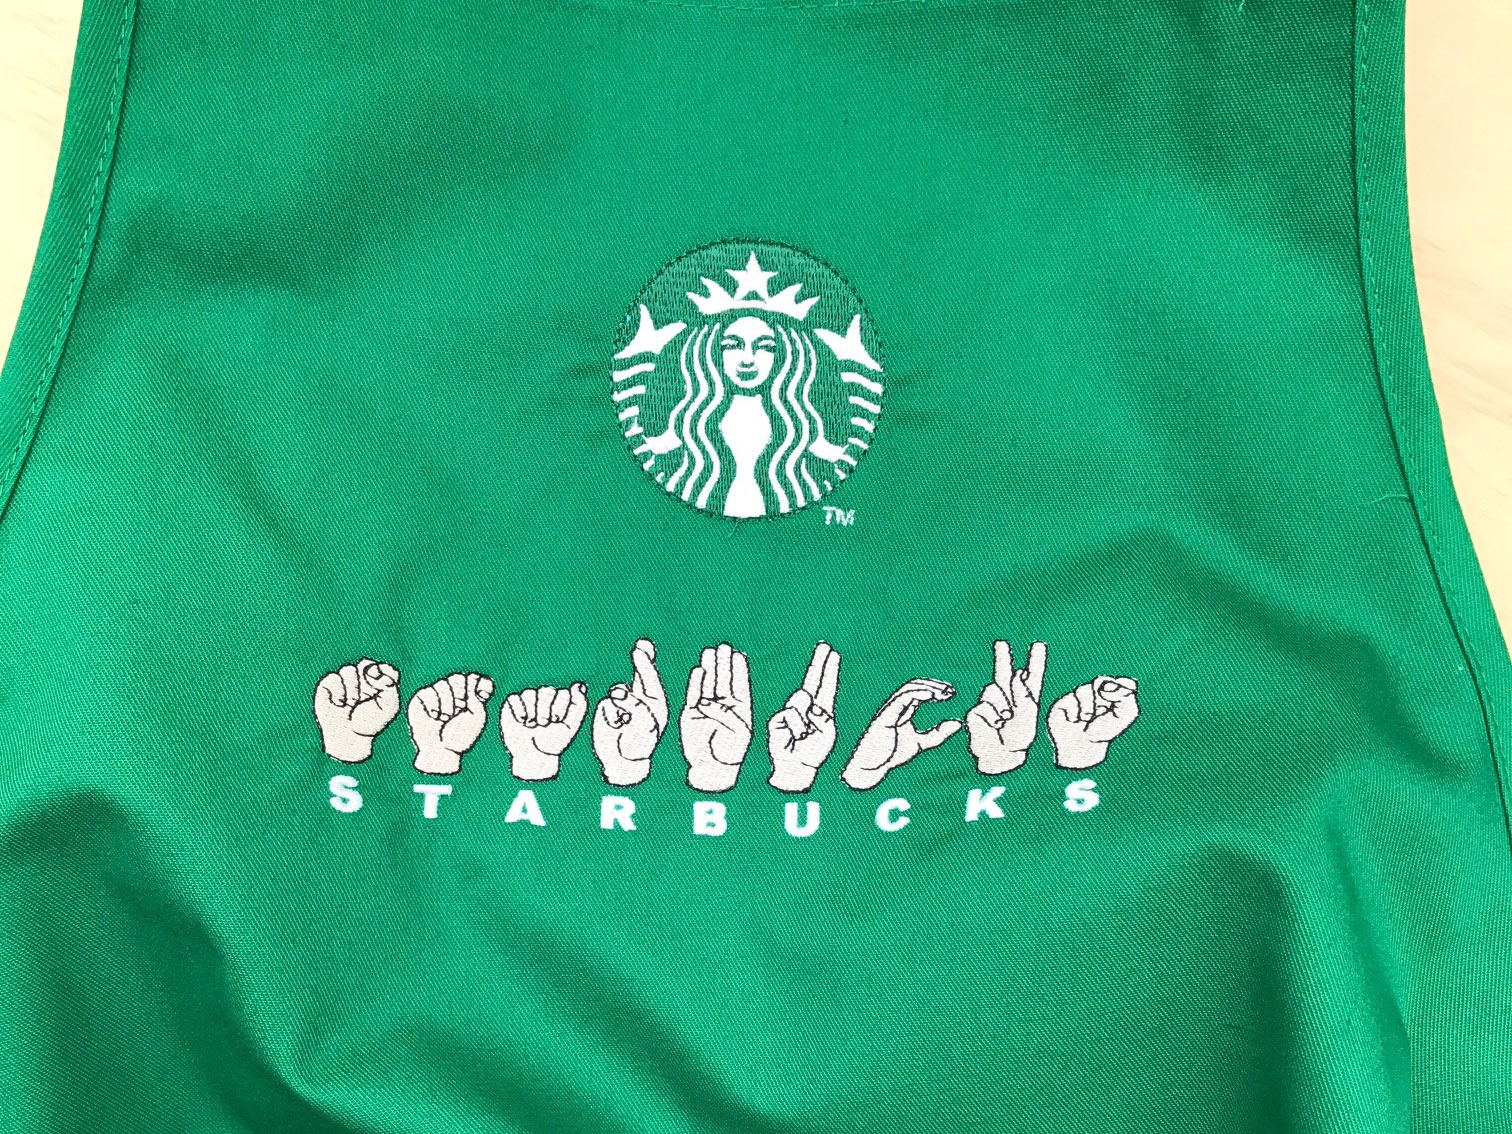 Starbucks Will Open Its First Sign Language Café in the U.S.